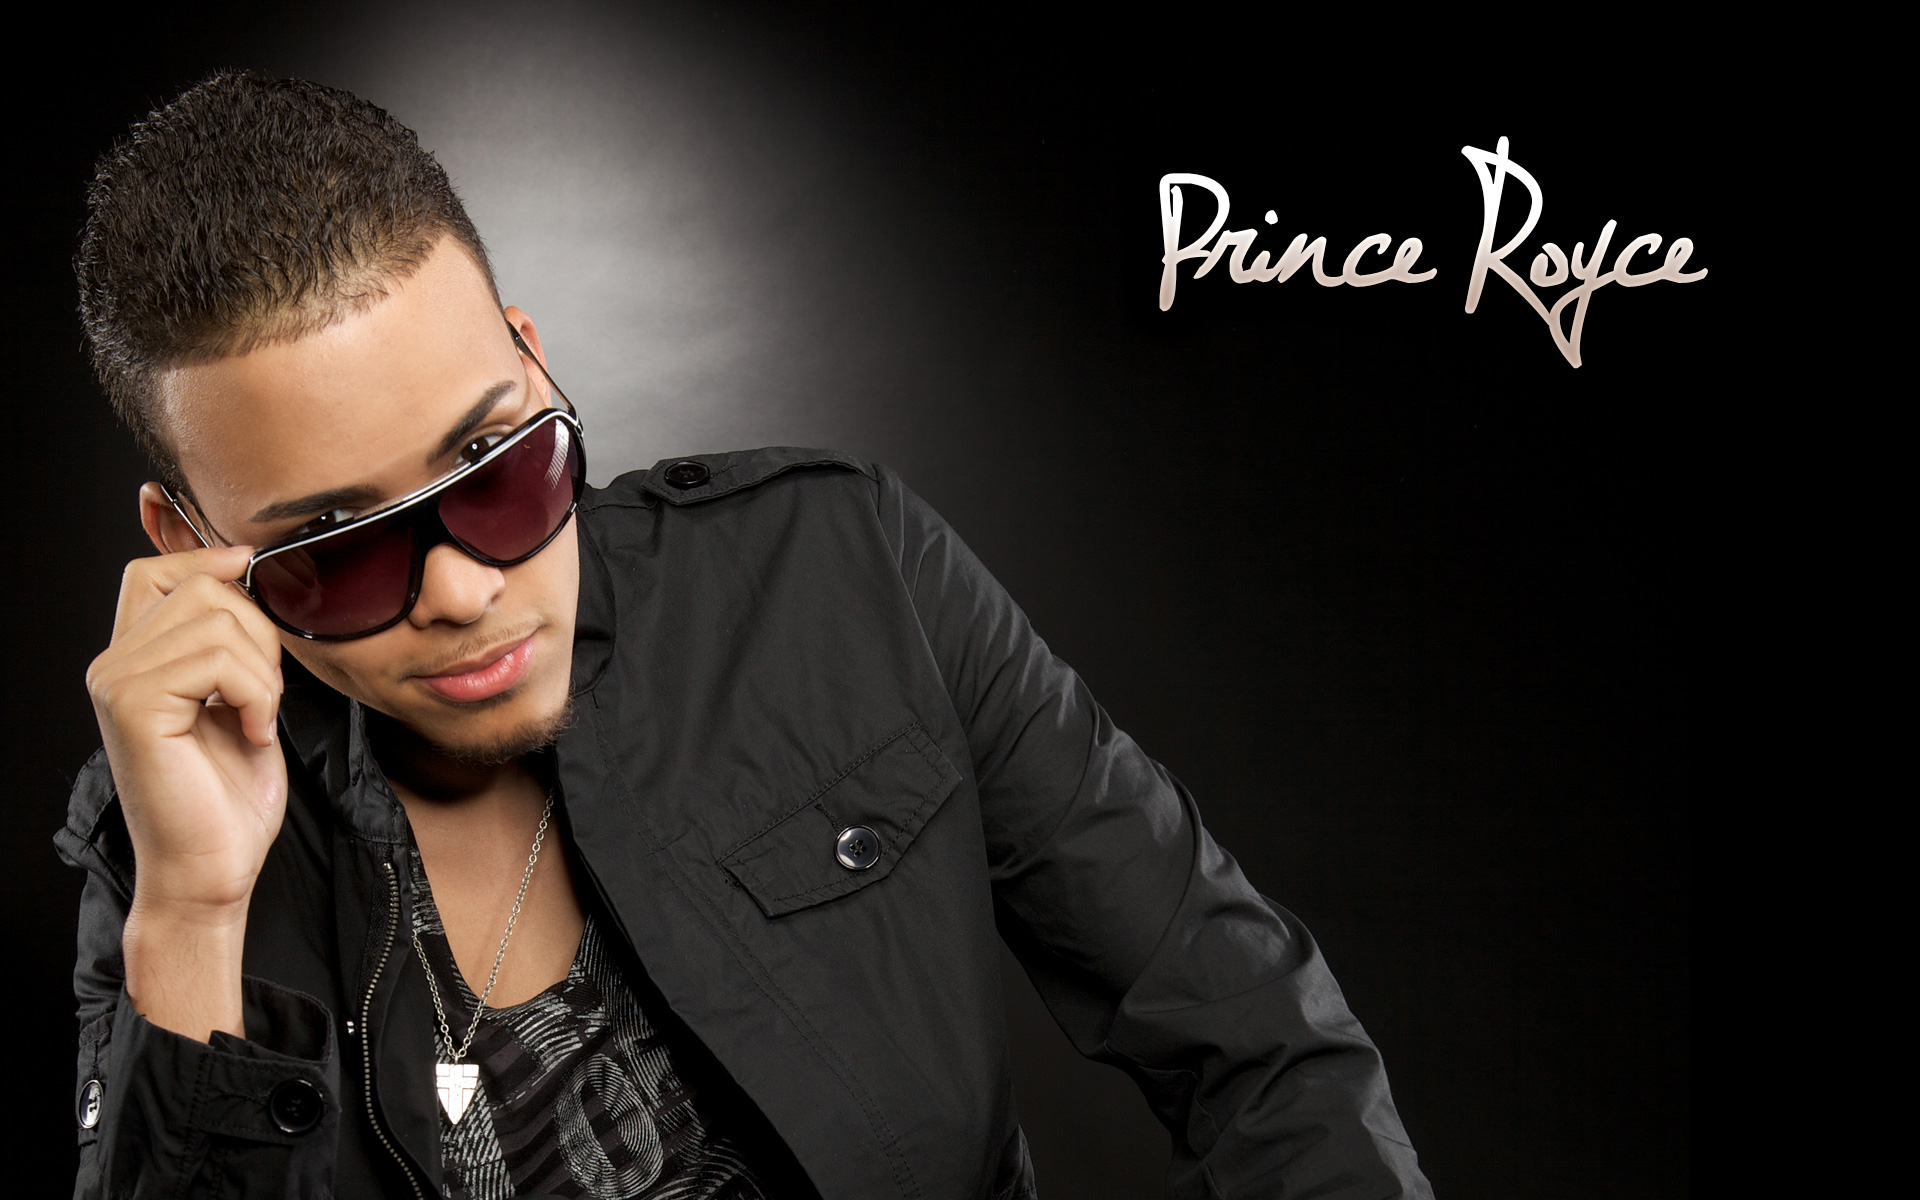 I'm 'Stuck On A Feeling' for Prince Royce!